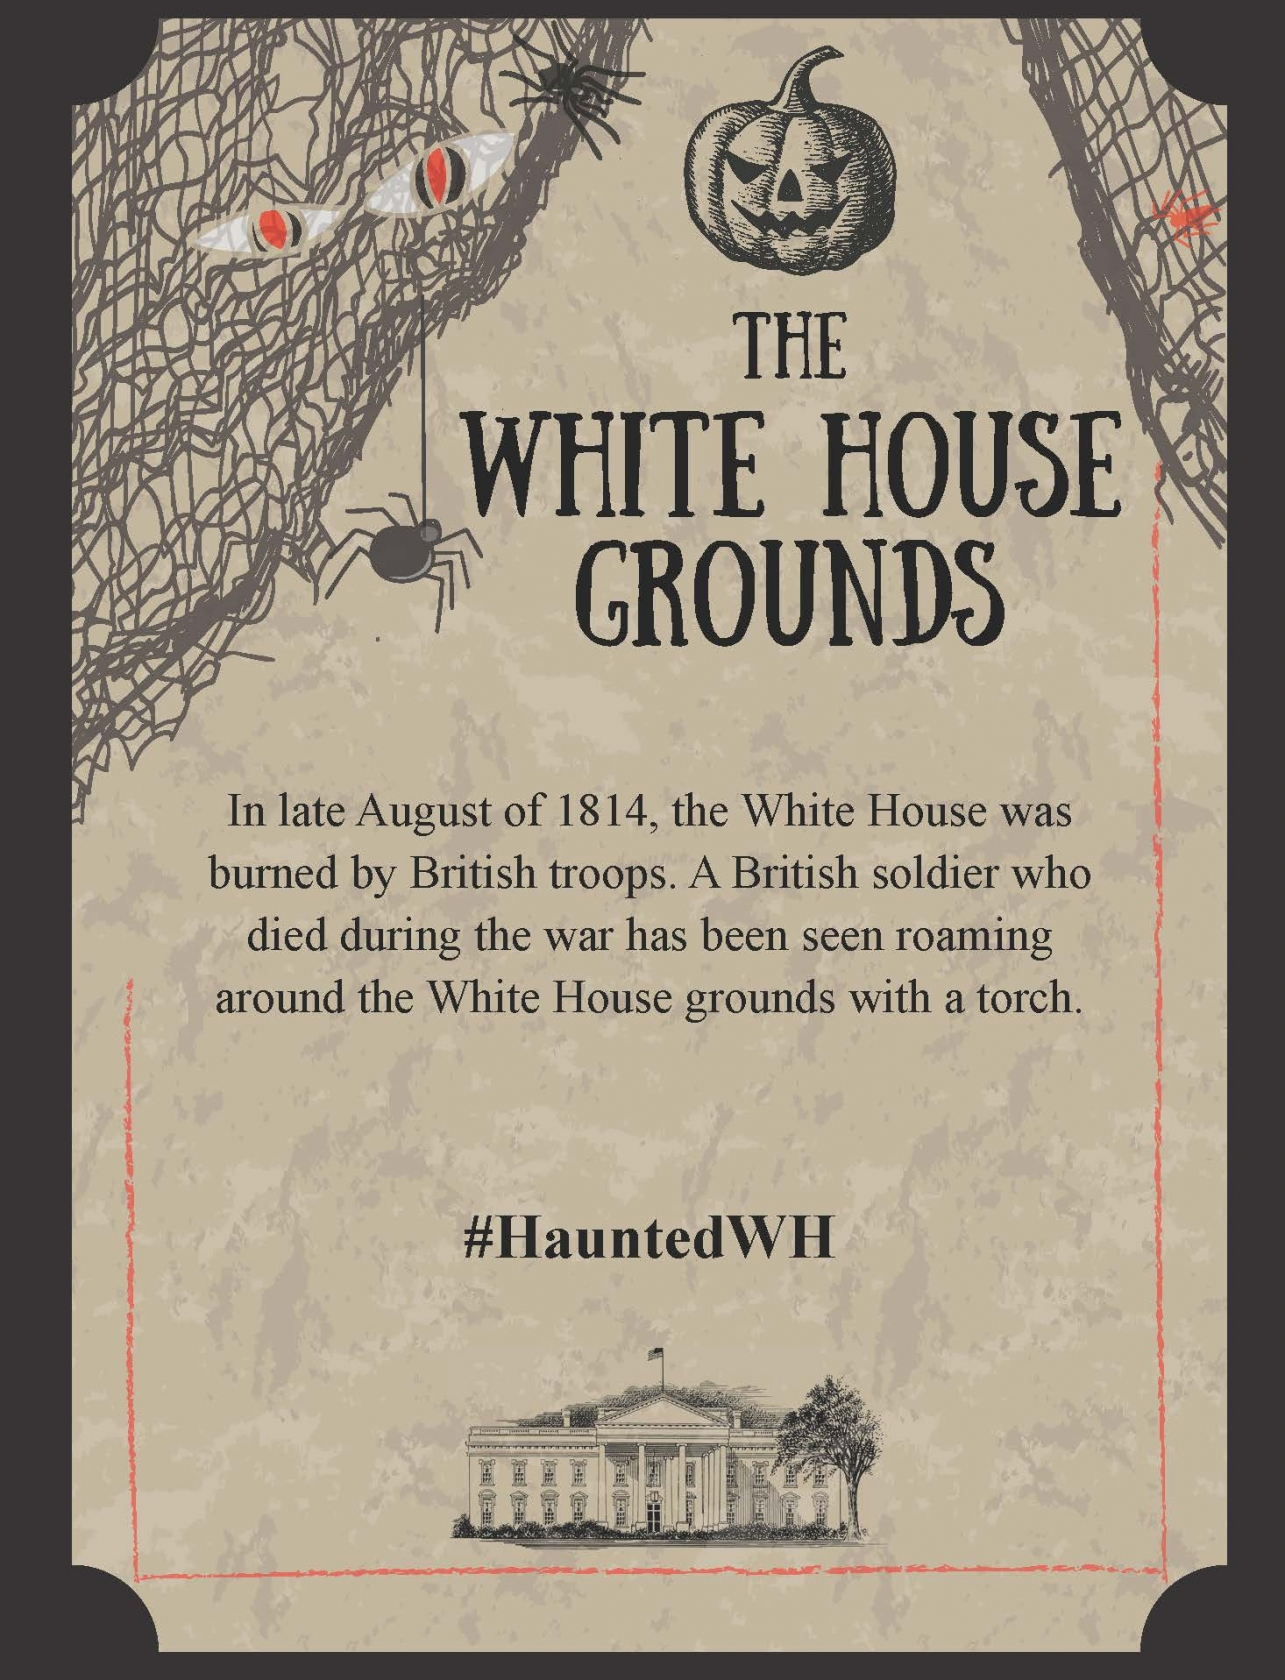 In late August of 1814, the White House was burned by British troops. A British soldier who died during the war has been seen roaming around the White House grounds with a torch.